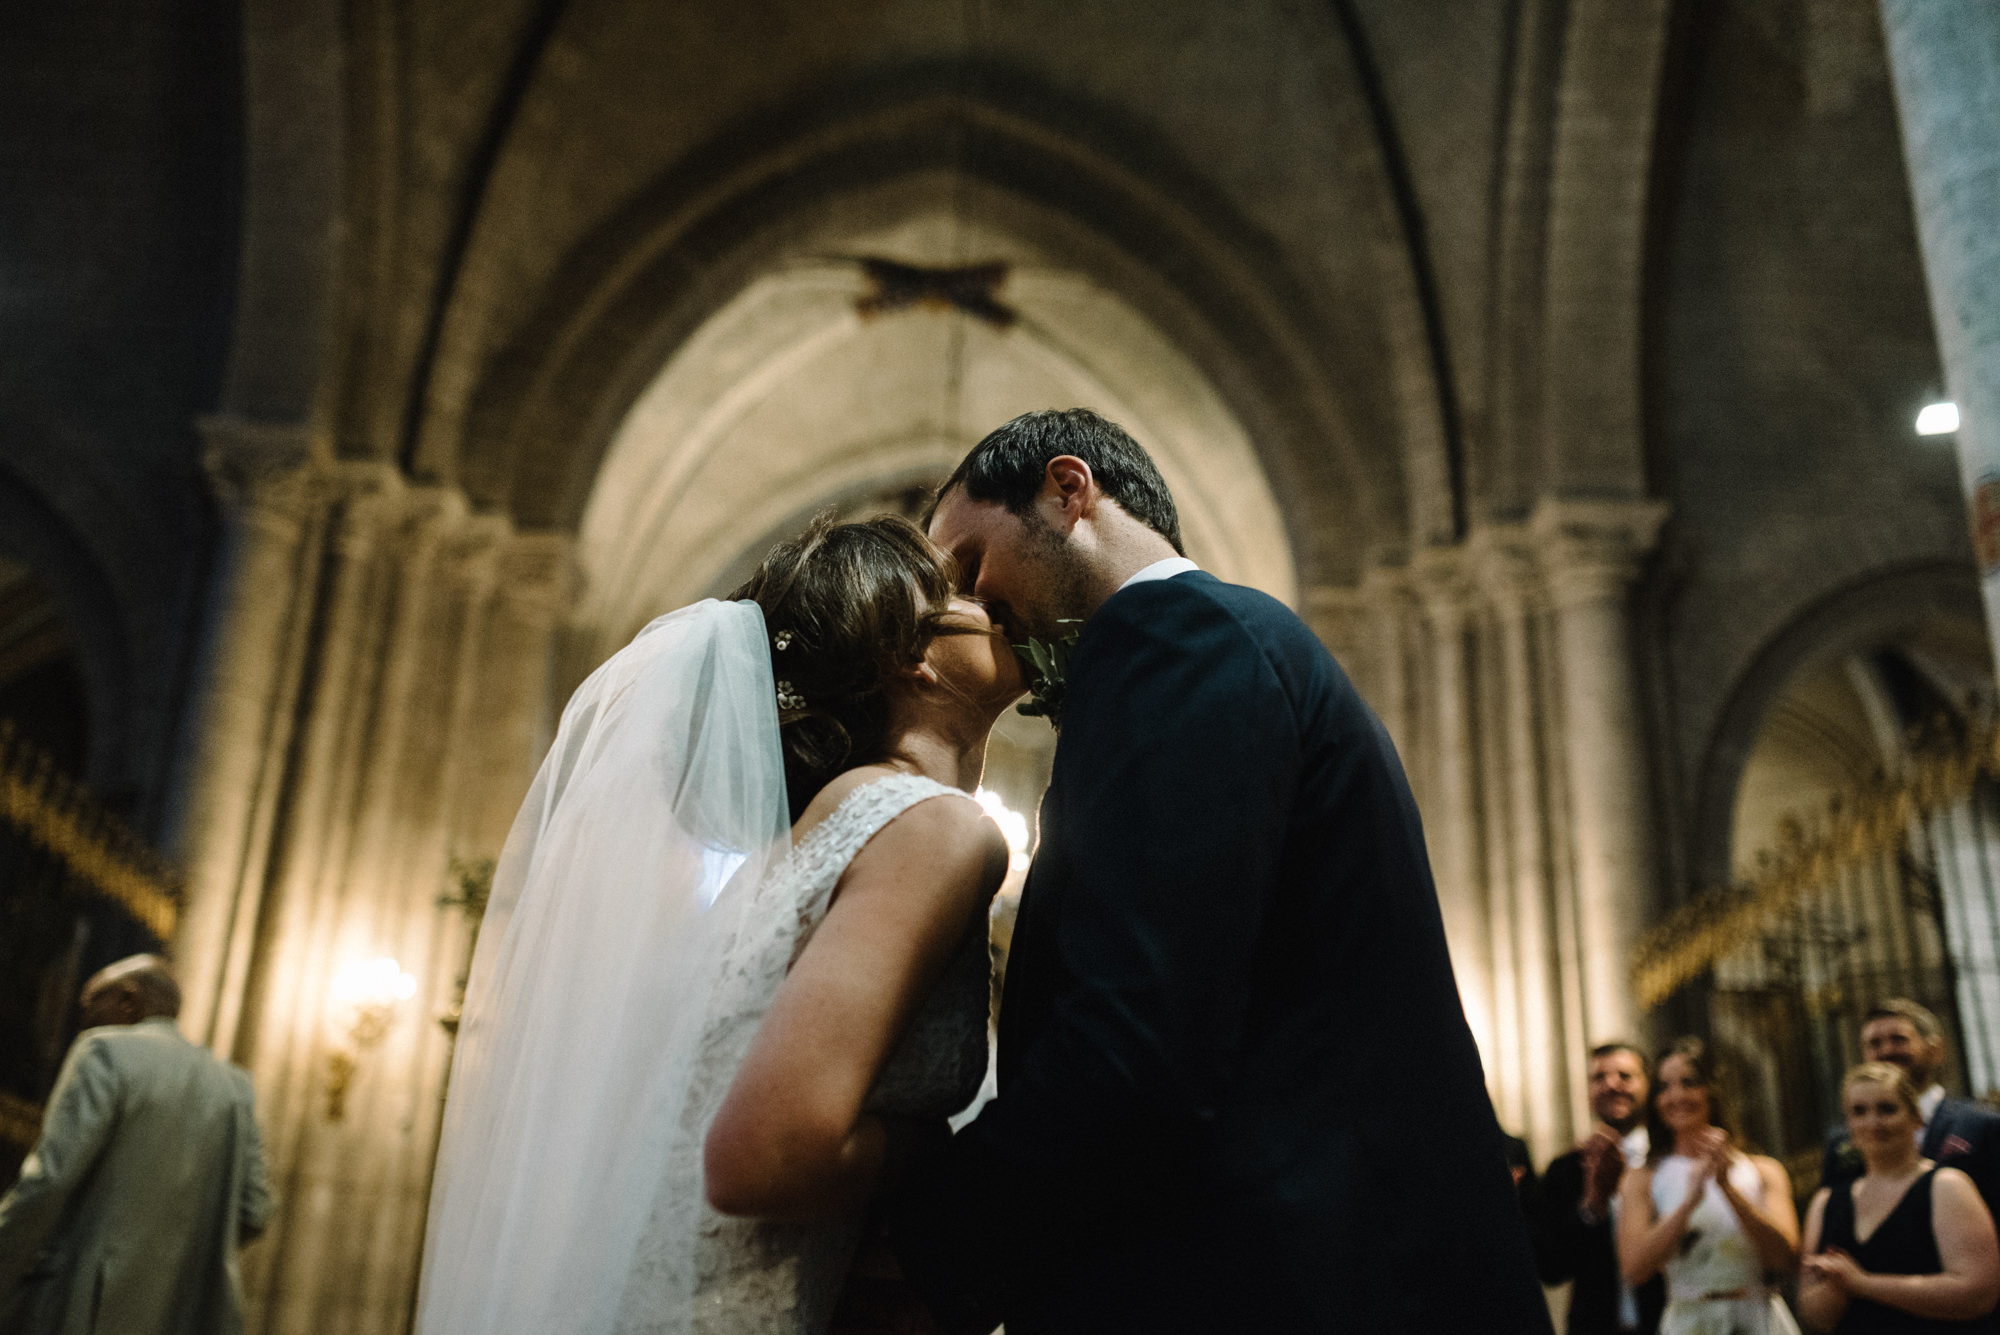 willybroussephotography-wedding-loirevalley-bidaudieres-laura-mathieu-38